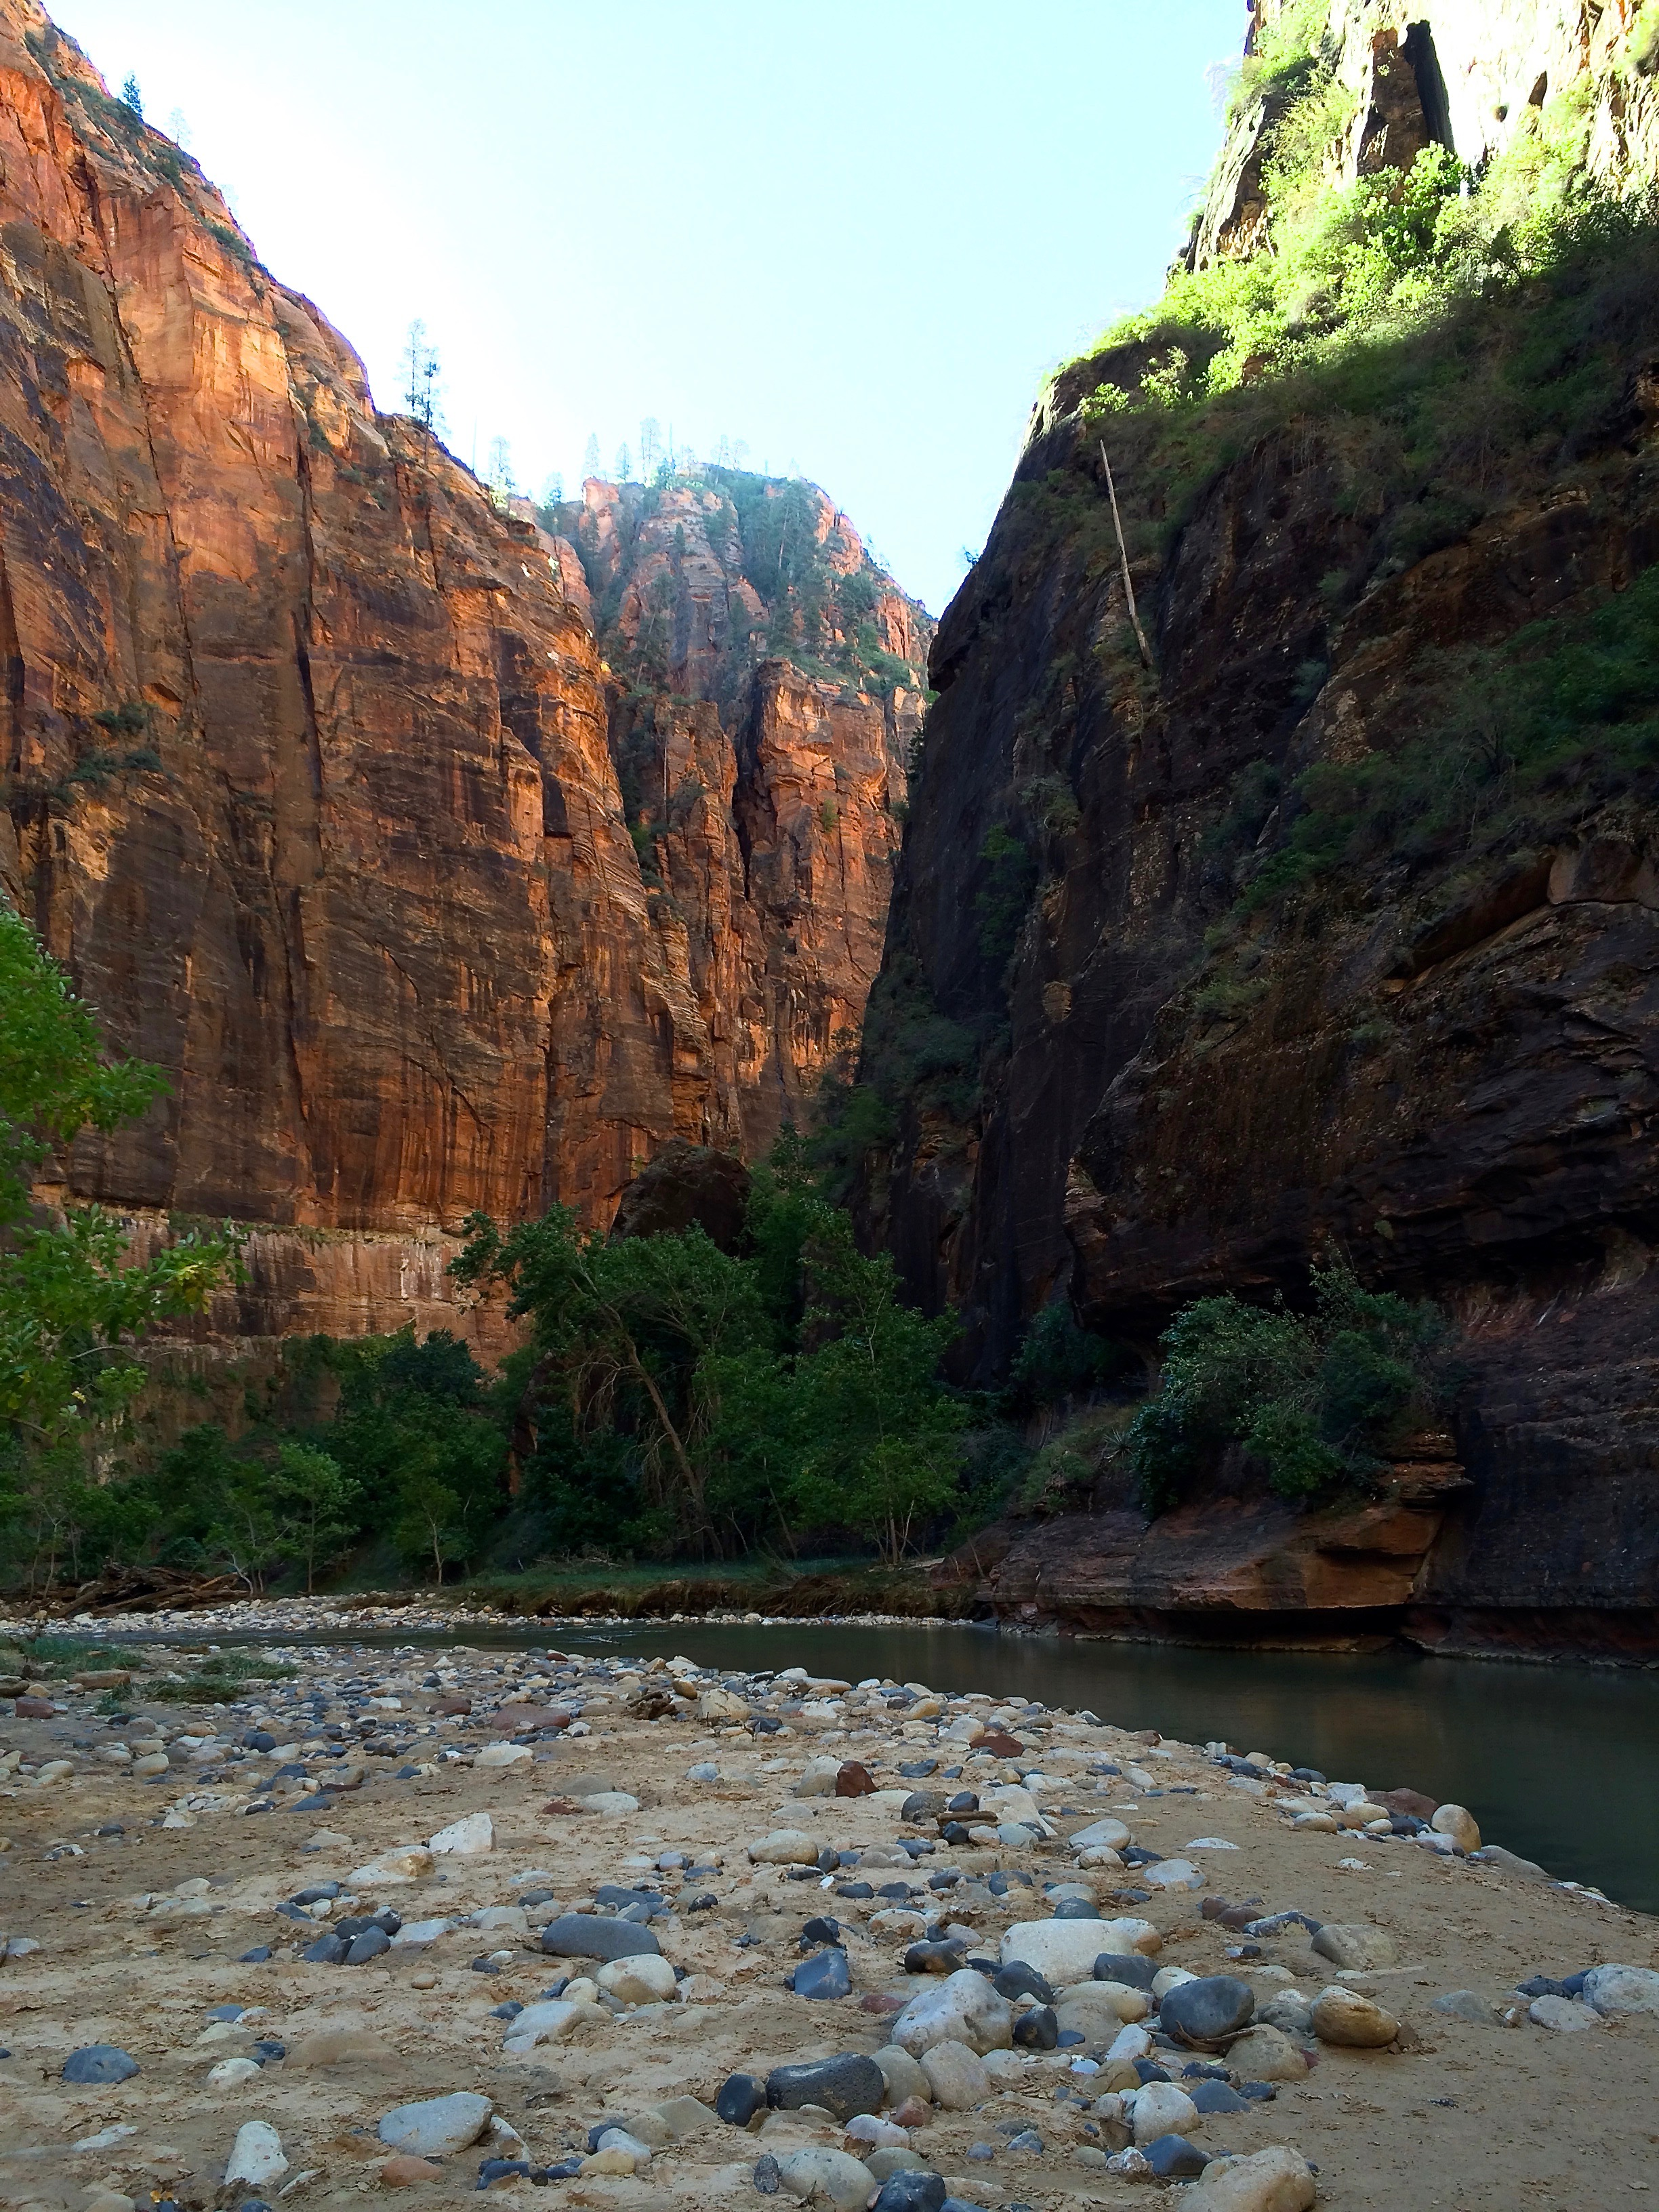 Sam in Zion - Hiking to Observation Point